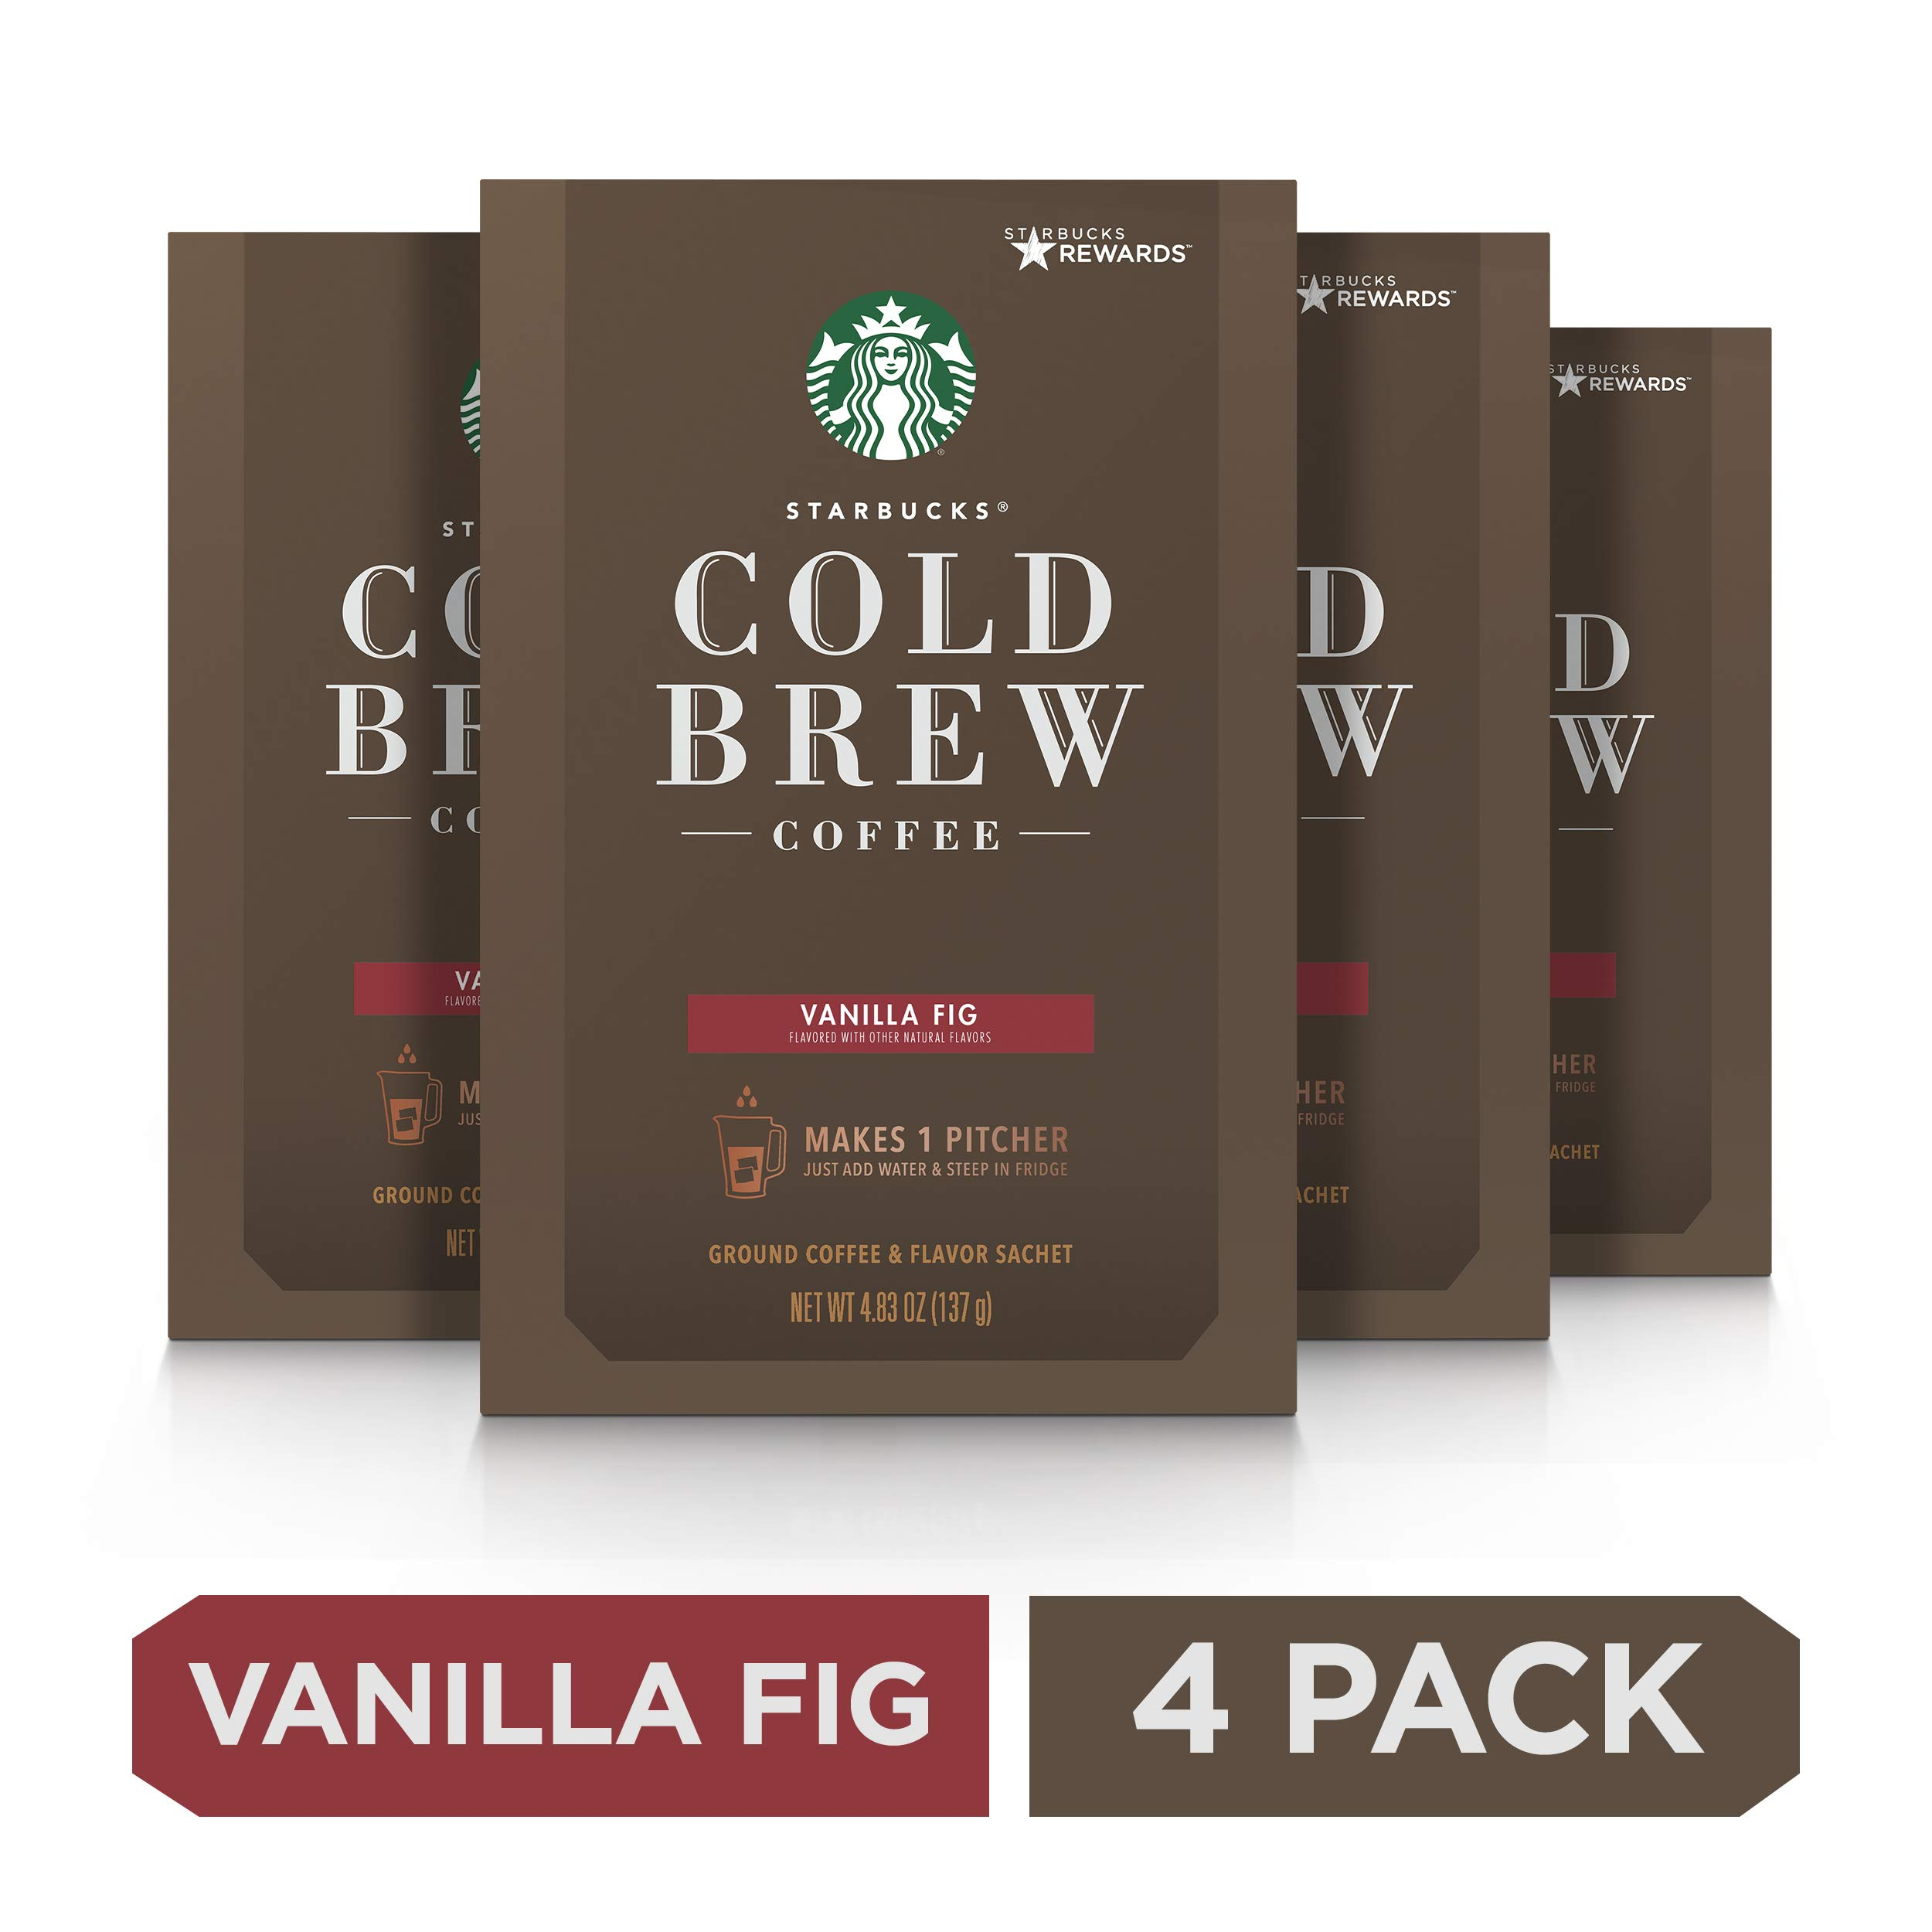 Starbucks Vanilla Fig Flavored Cold Brew Coffee, Medium Roast Coffee, Four Boxes of 8.6 Oz., 4 boxes make 4 pitchers